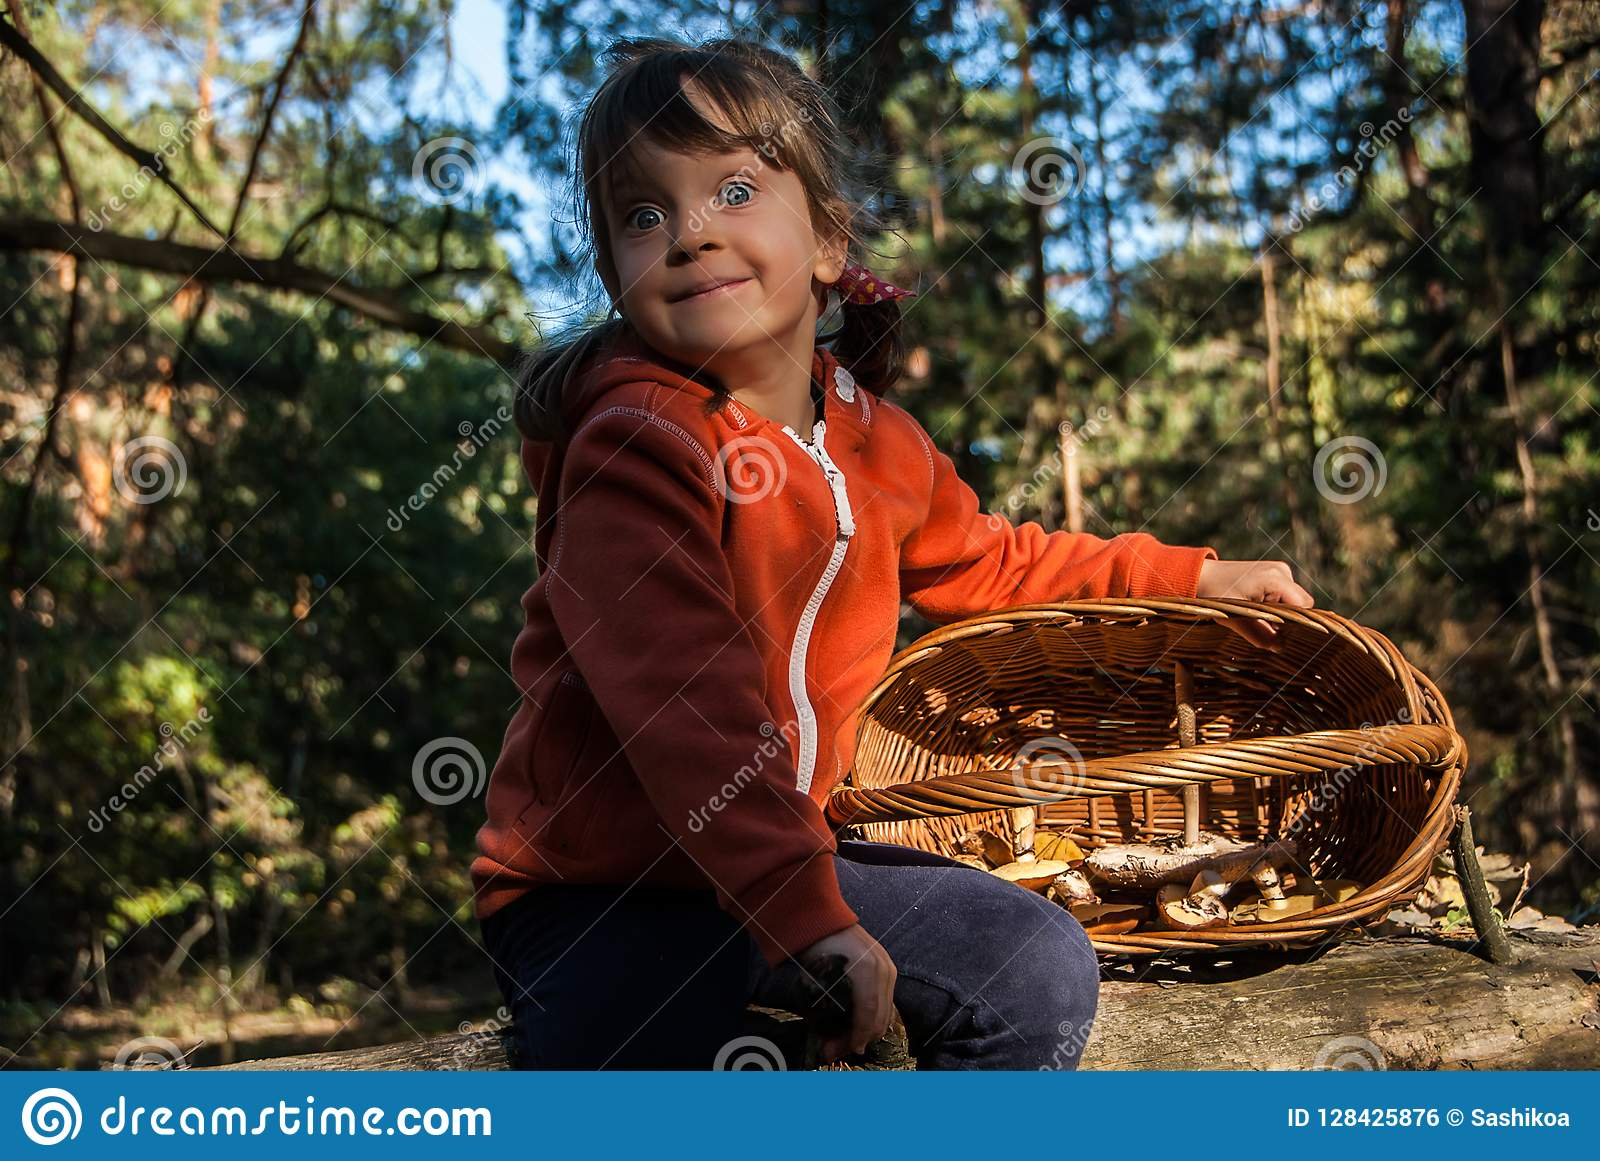 Cute five-years-old girl sitting on a fallen tree in forest with mushrooms in basket.